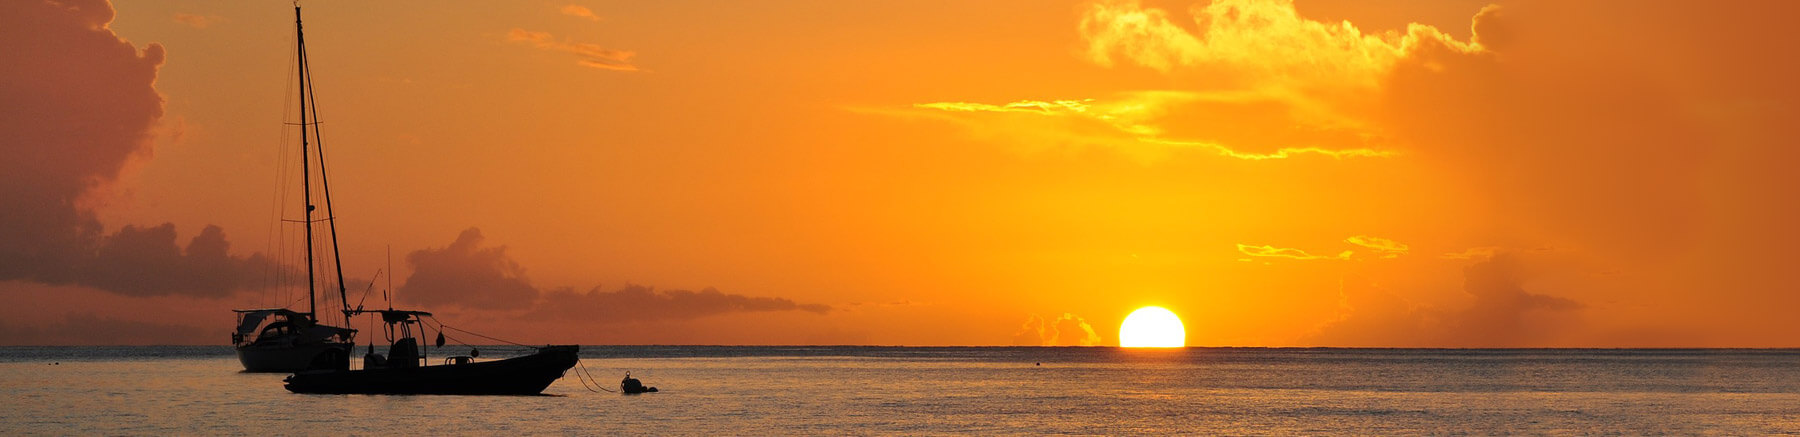 Beautiful sunset in Guadeloupe featuring 2 boats on the sea